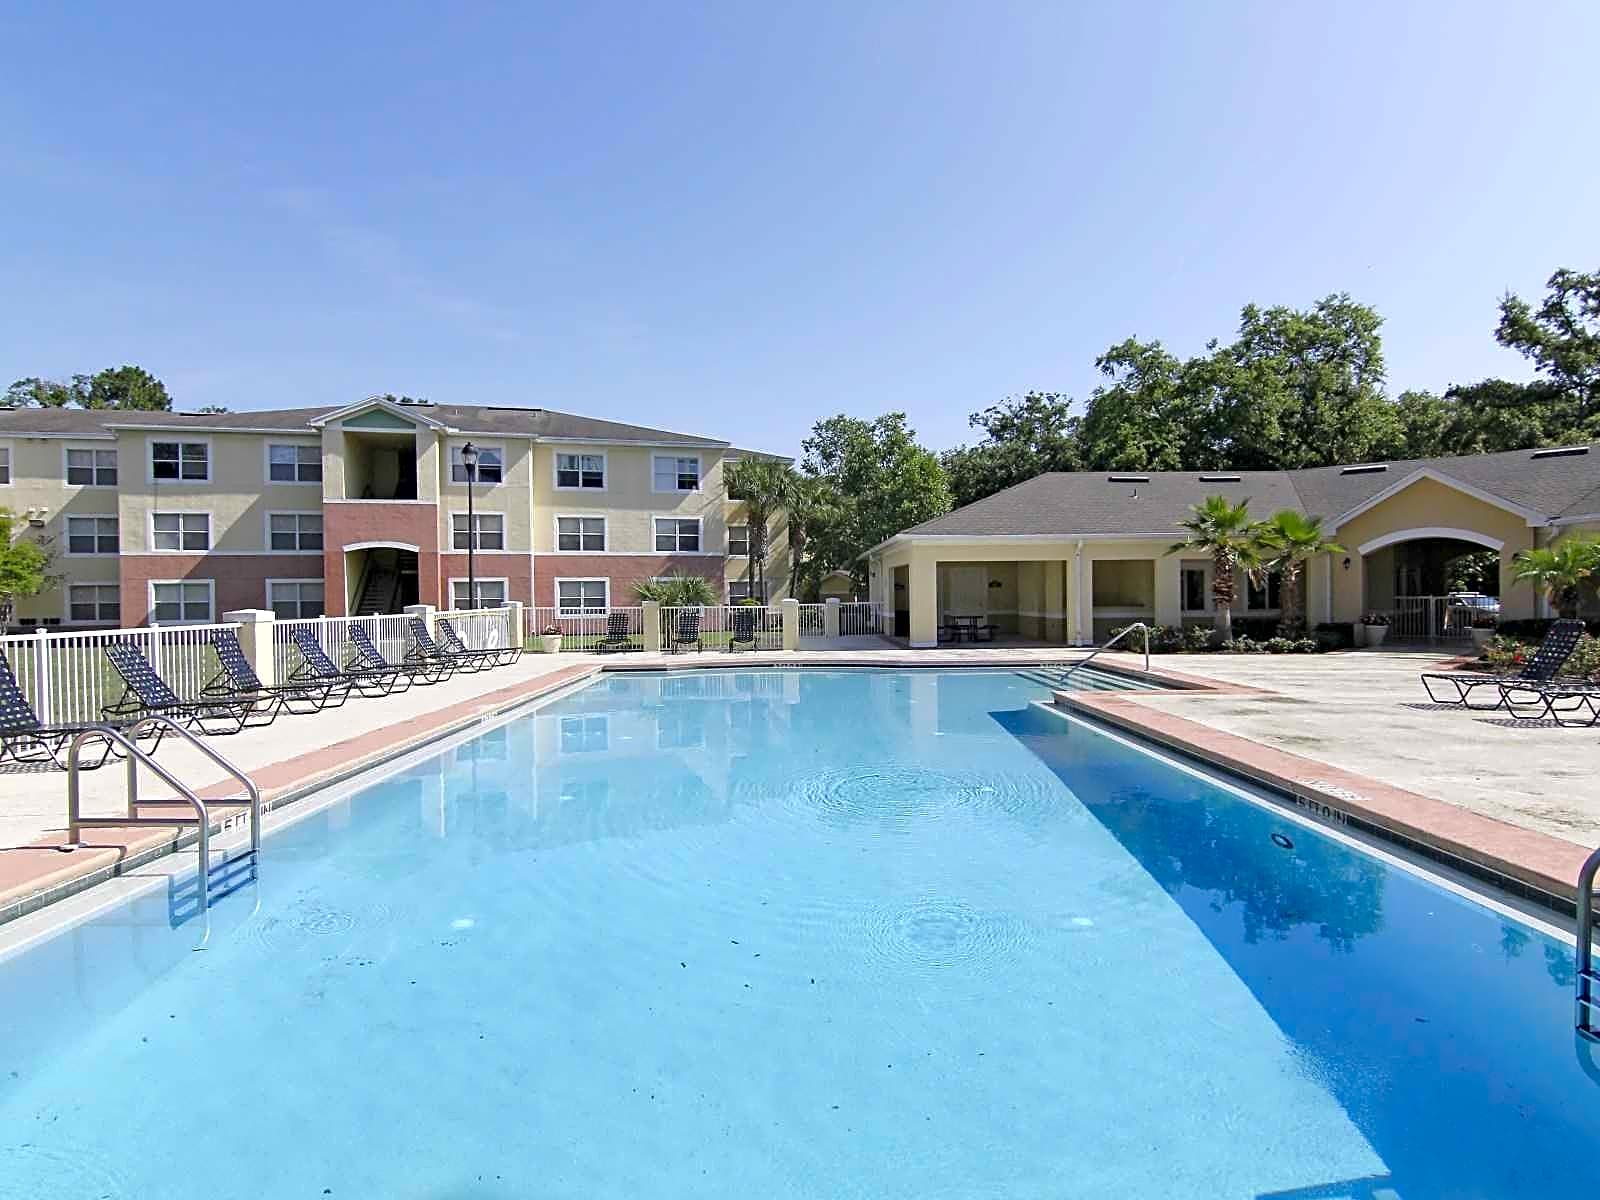 Photo: Jacksonville Apartment for Rent - $910.00 / month; 4 Bd & 2 Ba